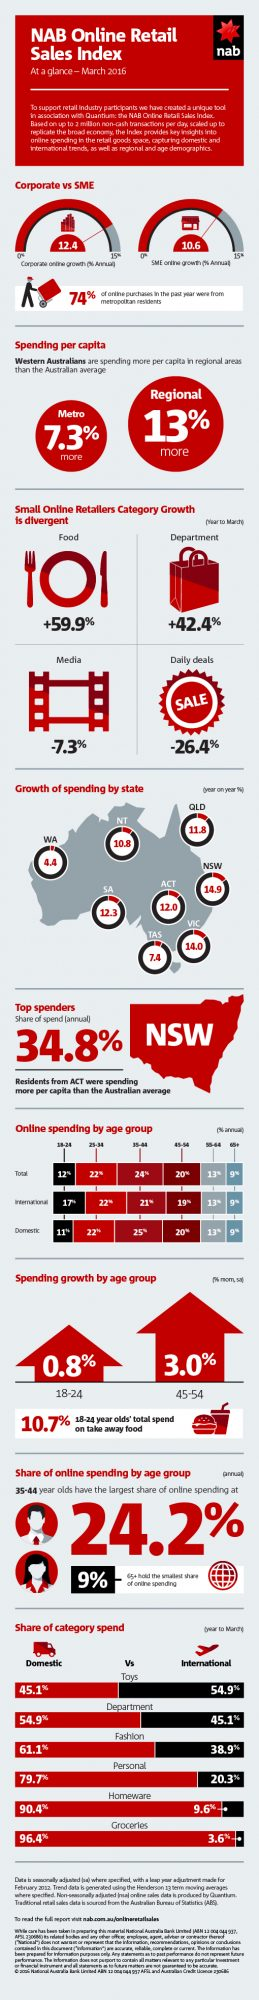 NAB Online Retail Sales Index March 2016_Longform infographic.pdf